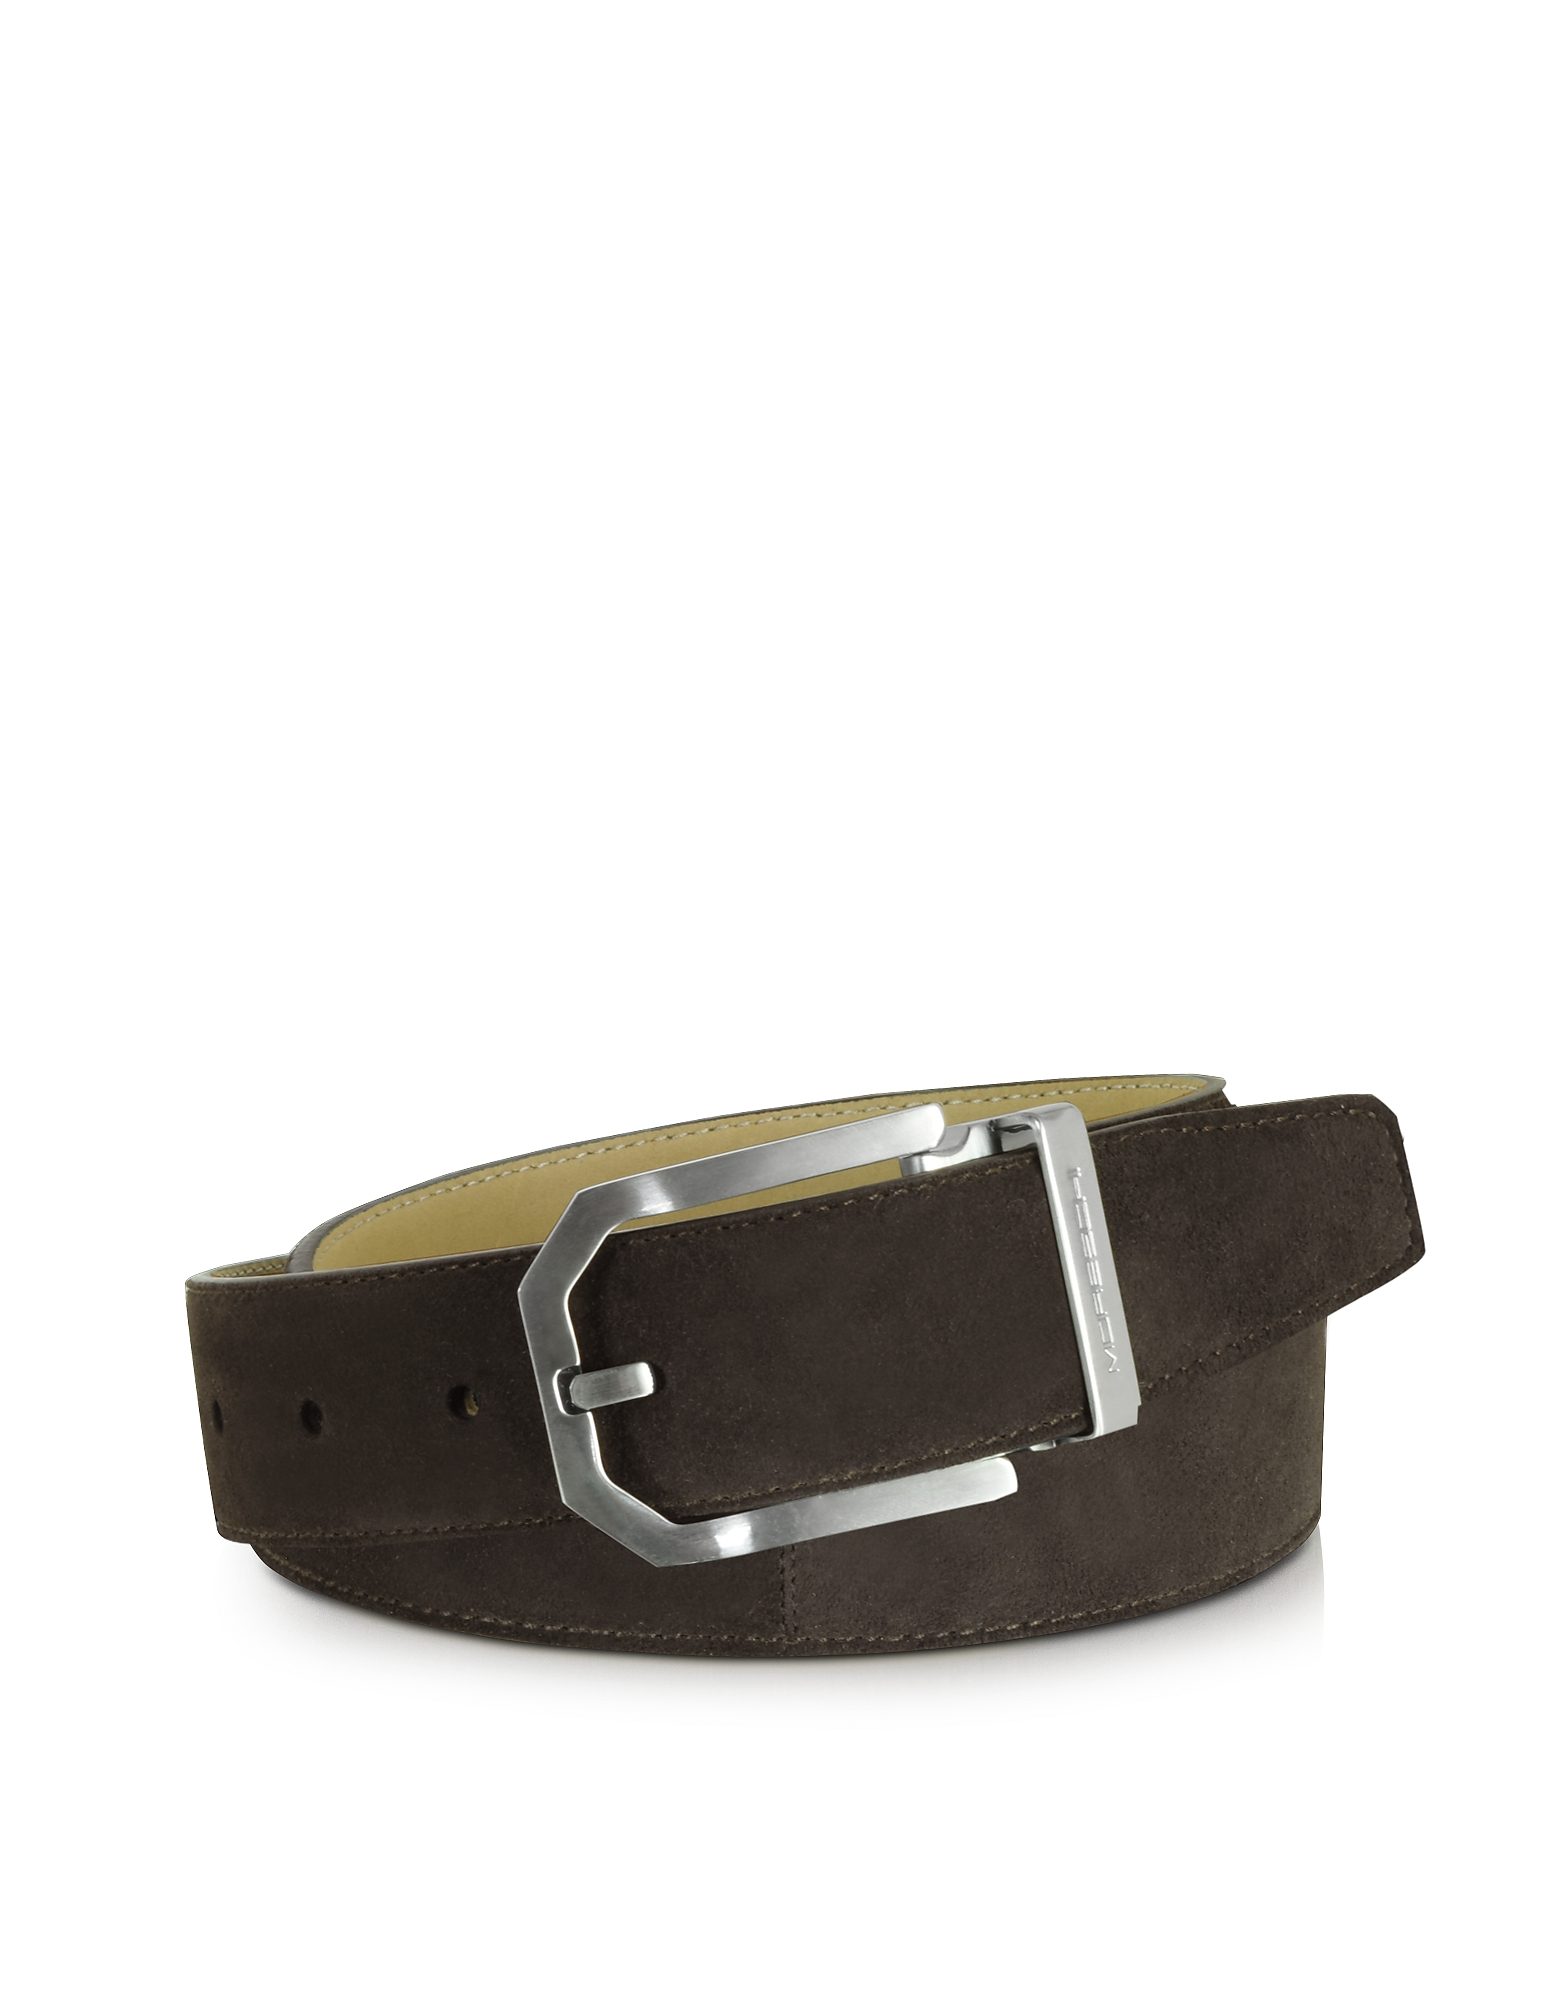 Moreschi Men's Belts, Monterey Dark Brown Suede Belt